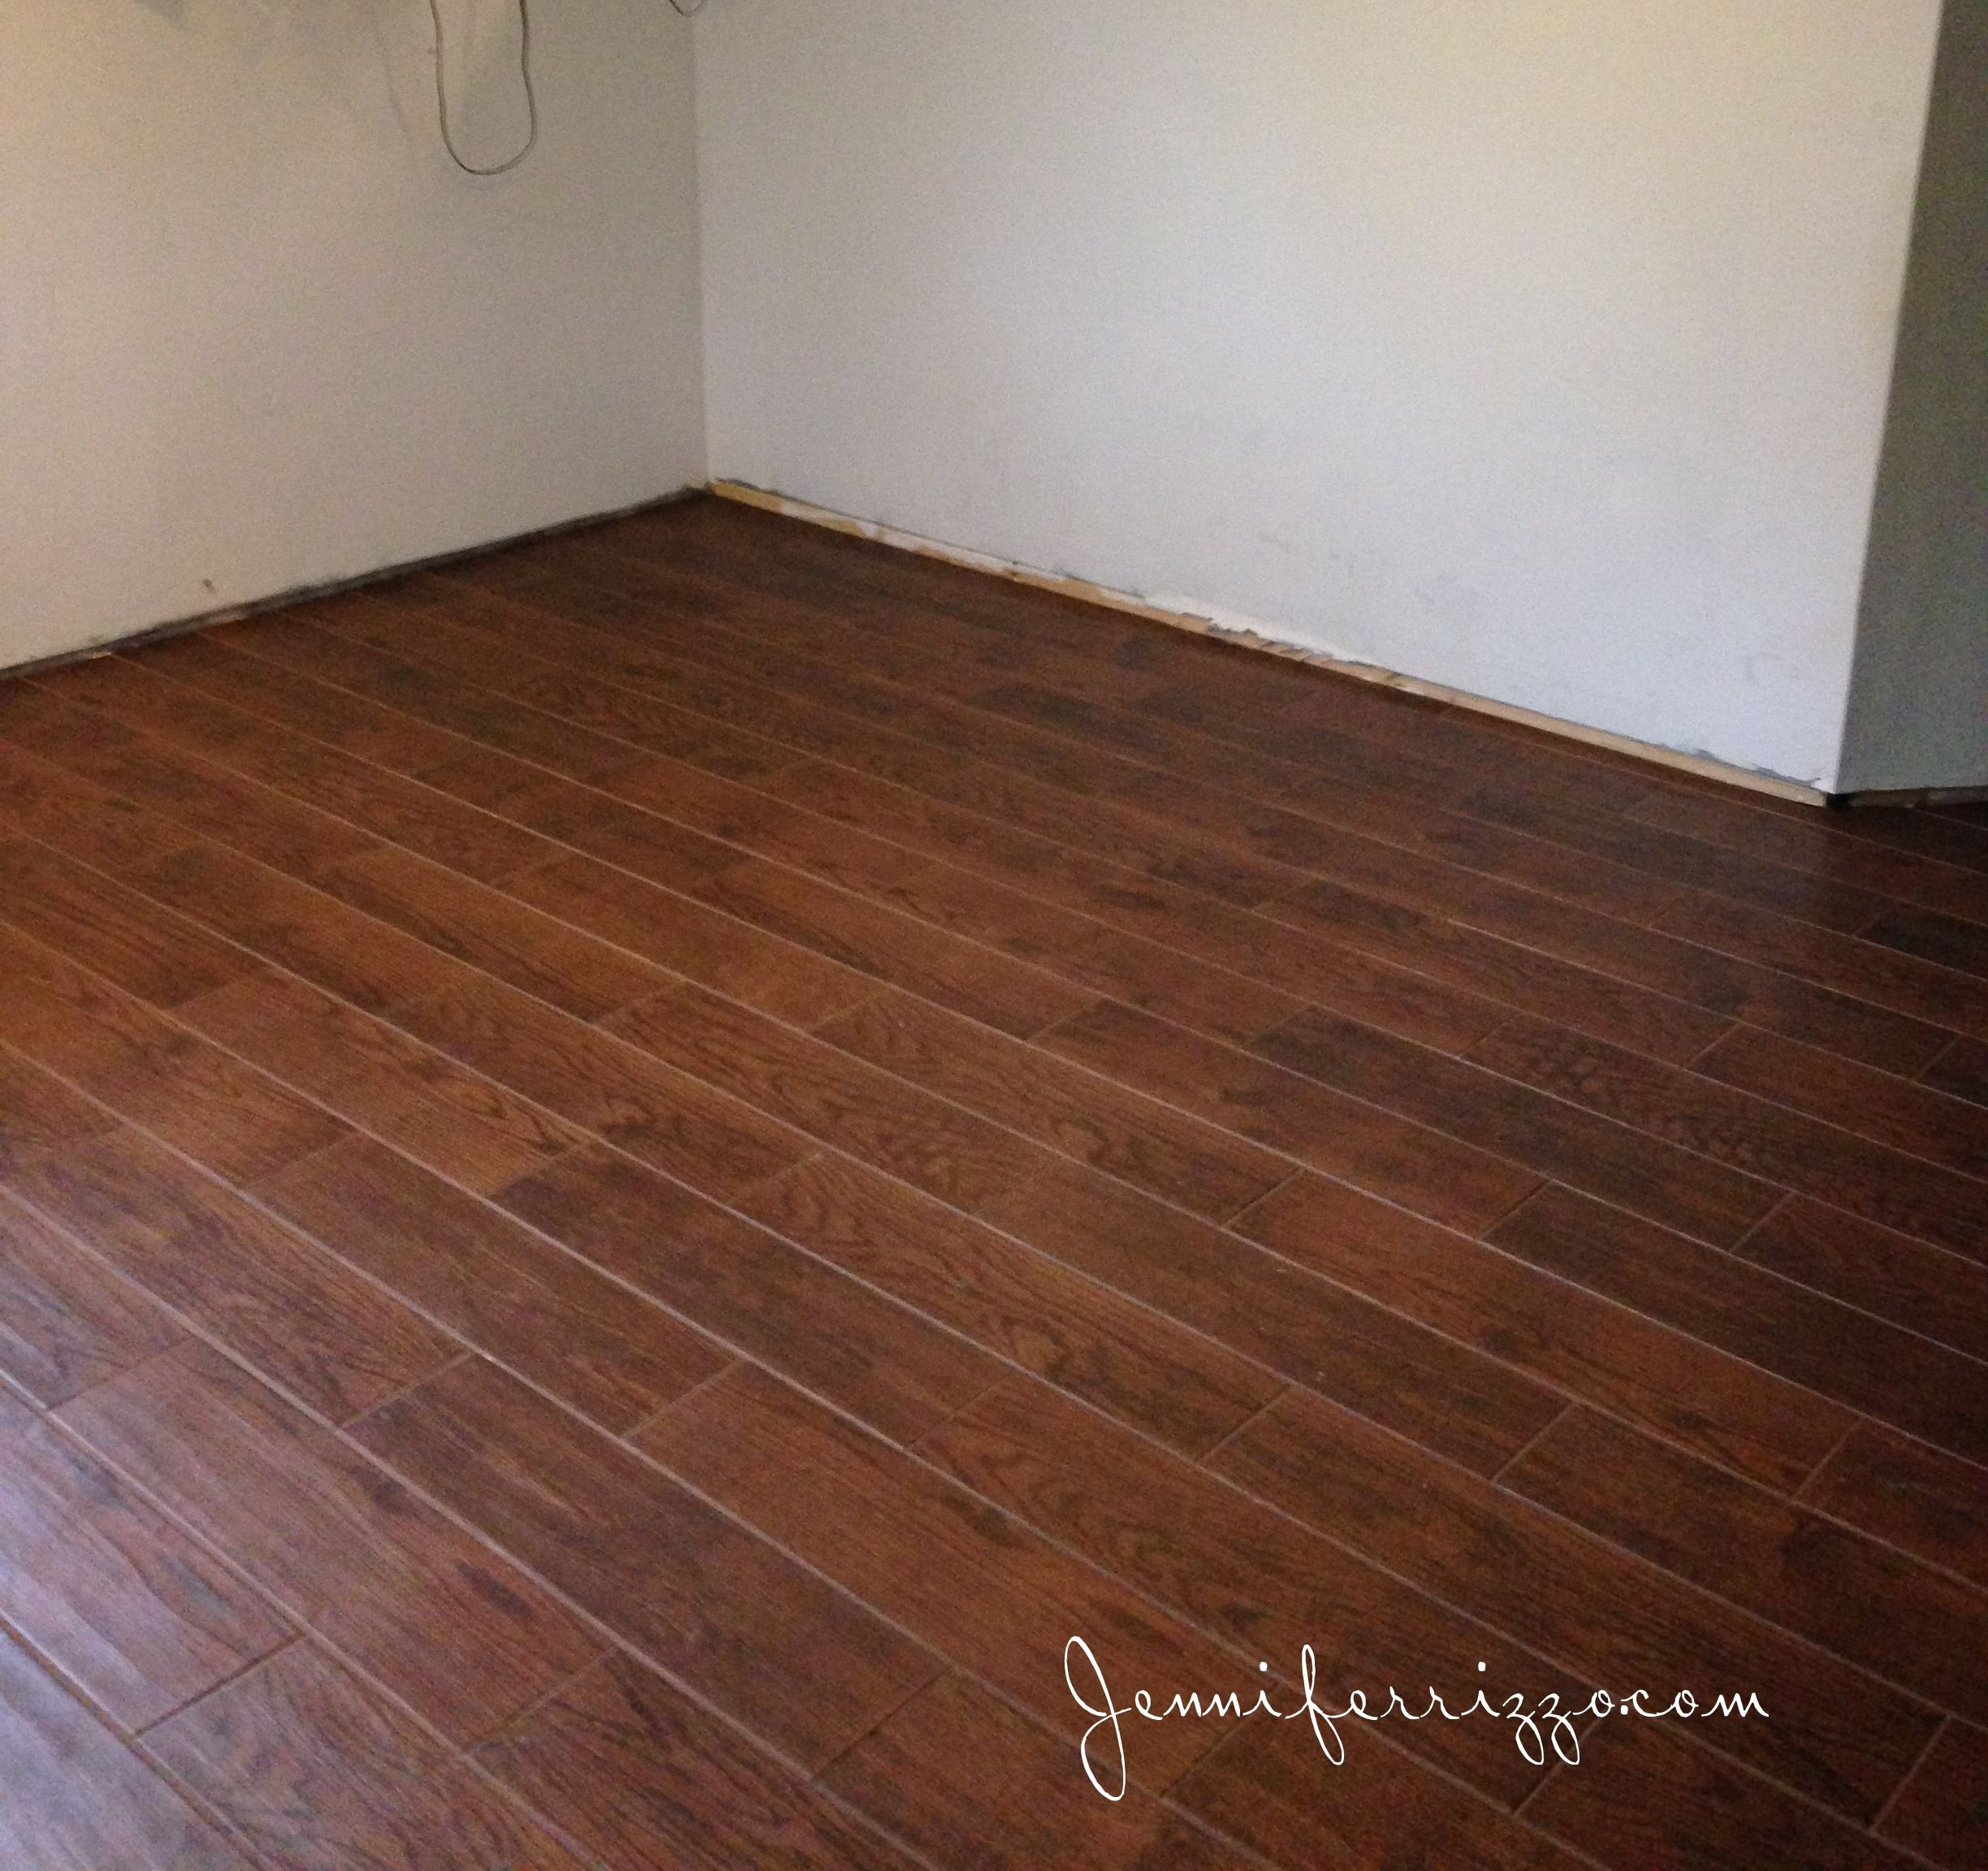 home depot hardwood floor installation cost of our wood look ceramic tile is finally installed crafts pinterest with regard to installation of our wood look ceramic tile from home depot in our basement living room and white ceramic mosaic tile with gray grout in our laundry room